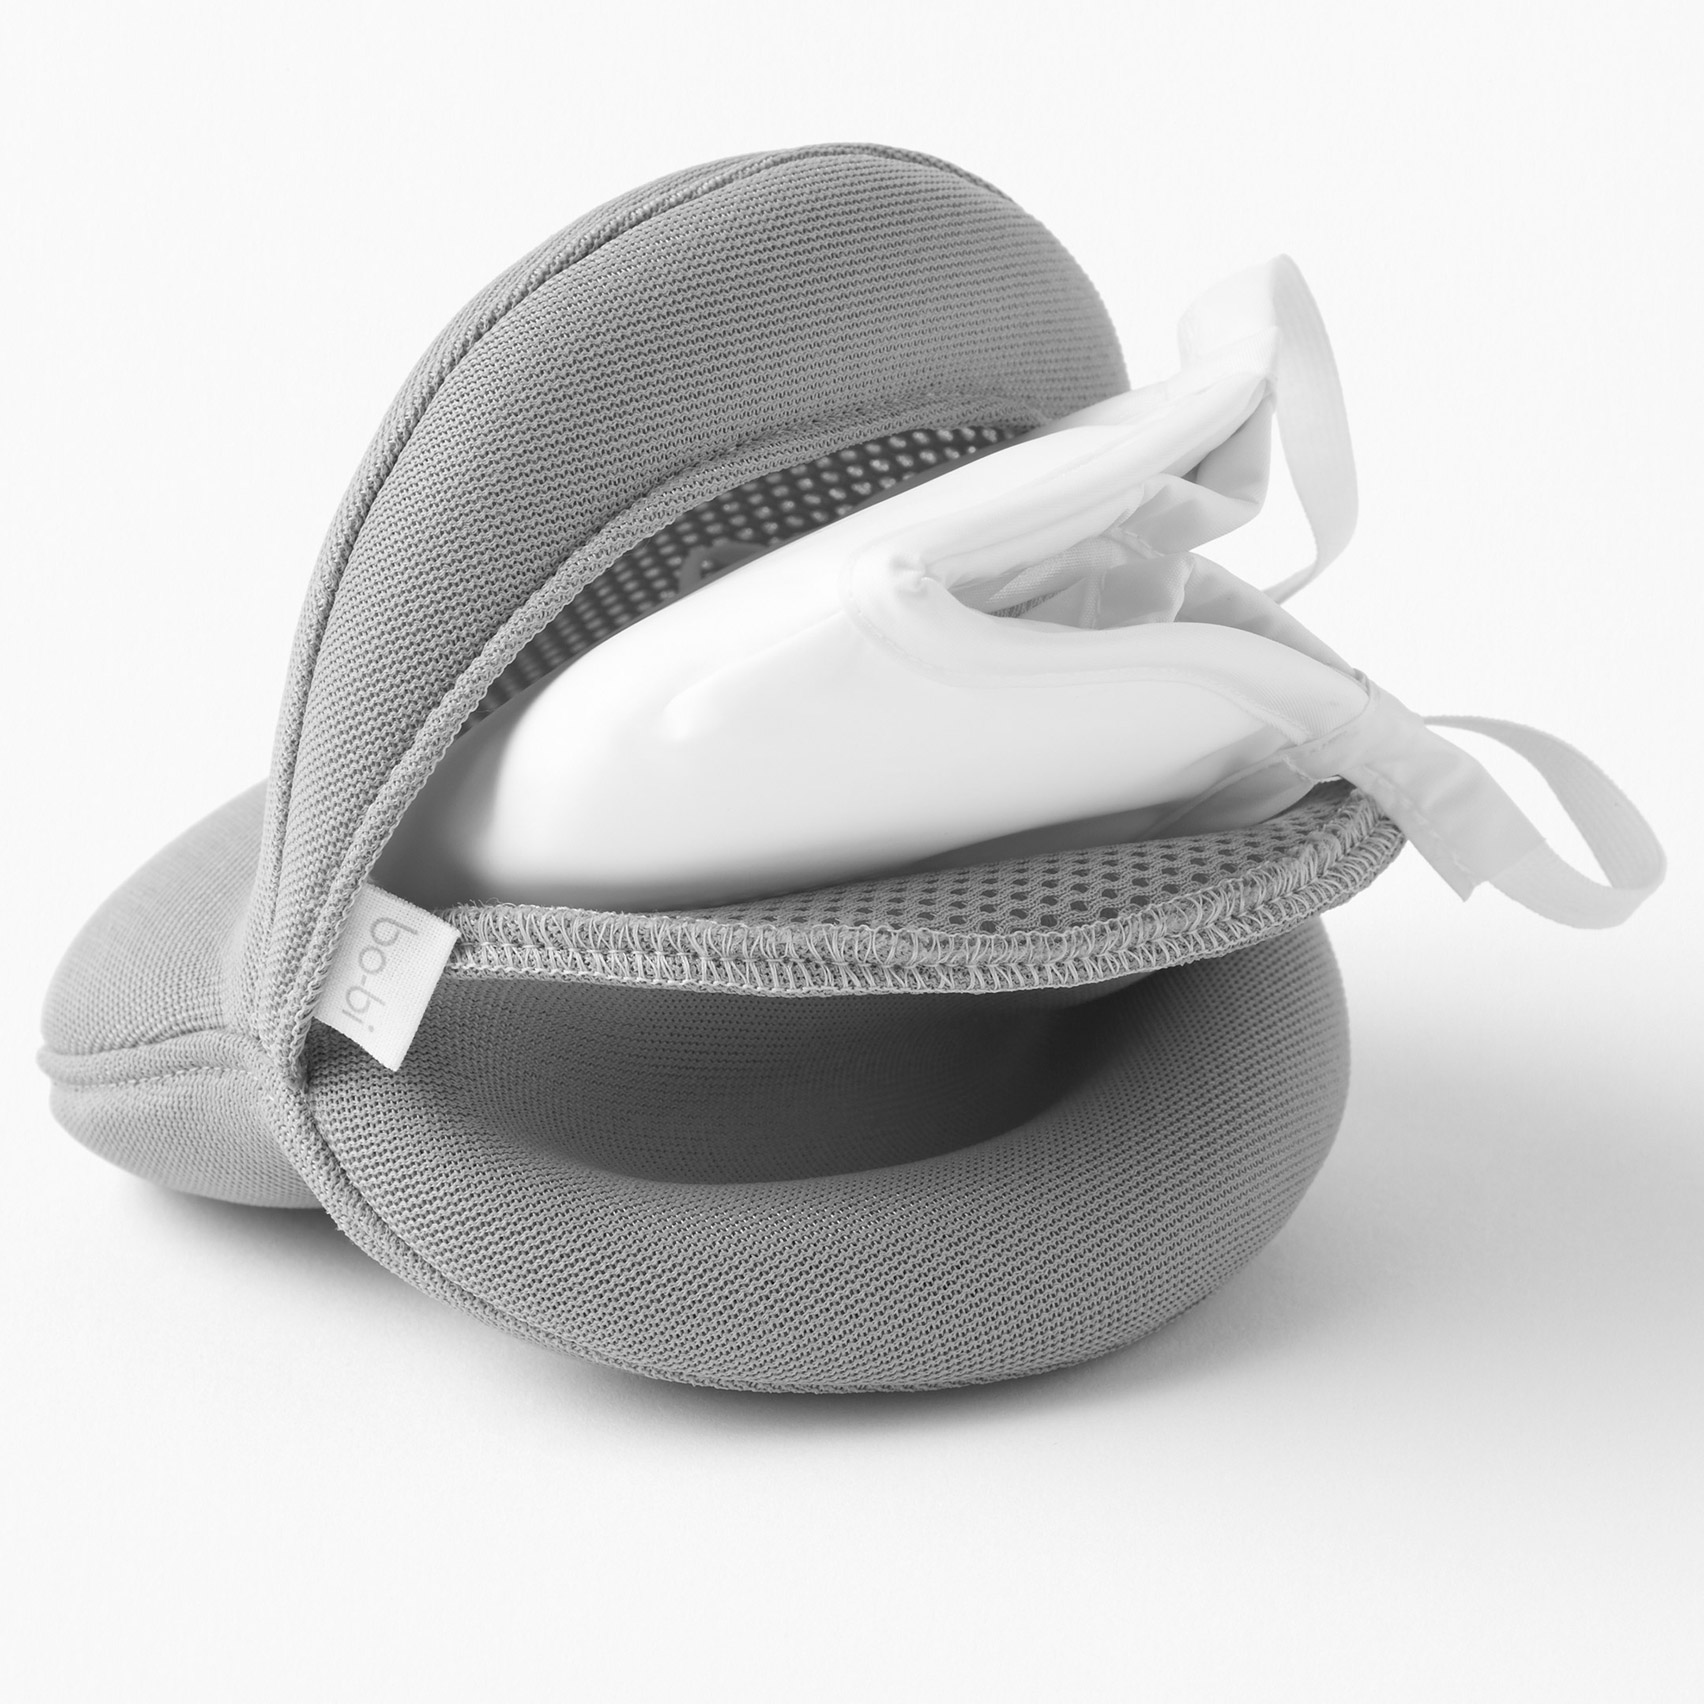 Nendo designs minimal branding for Bo-Bi pollution mask